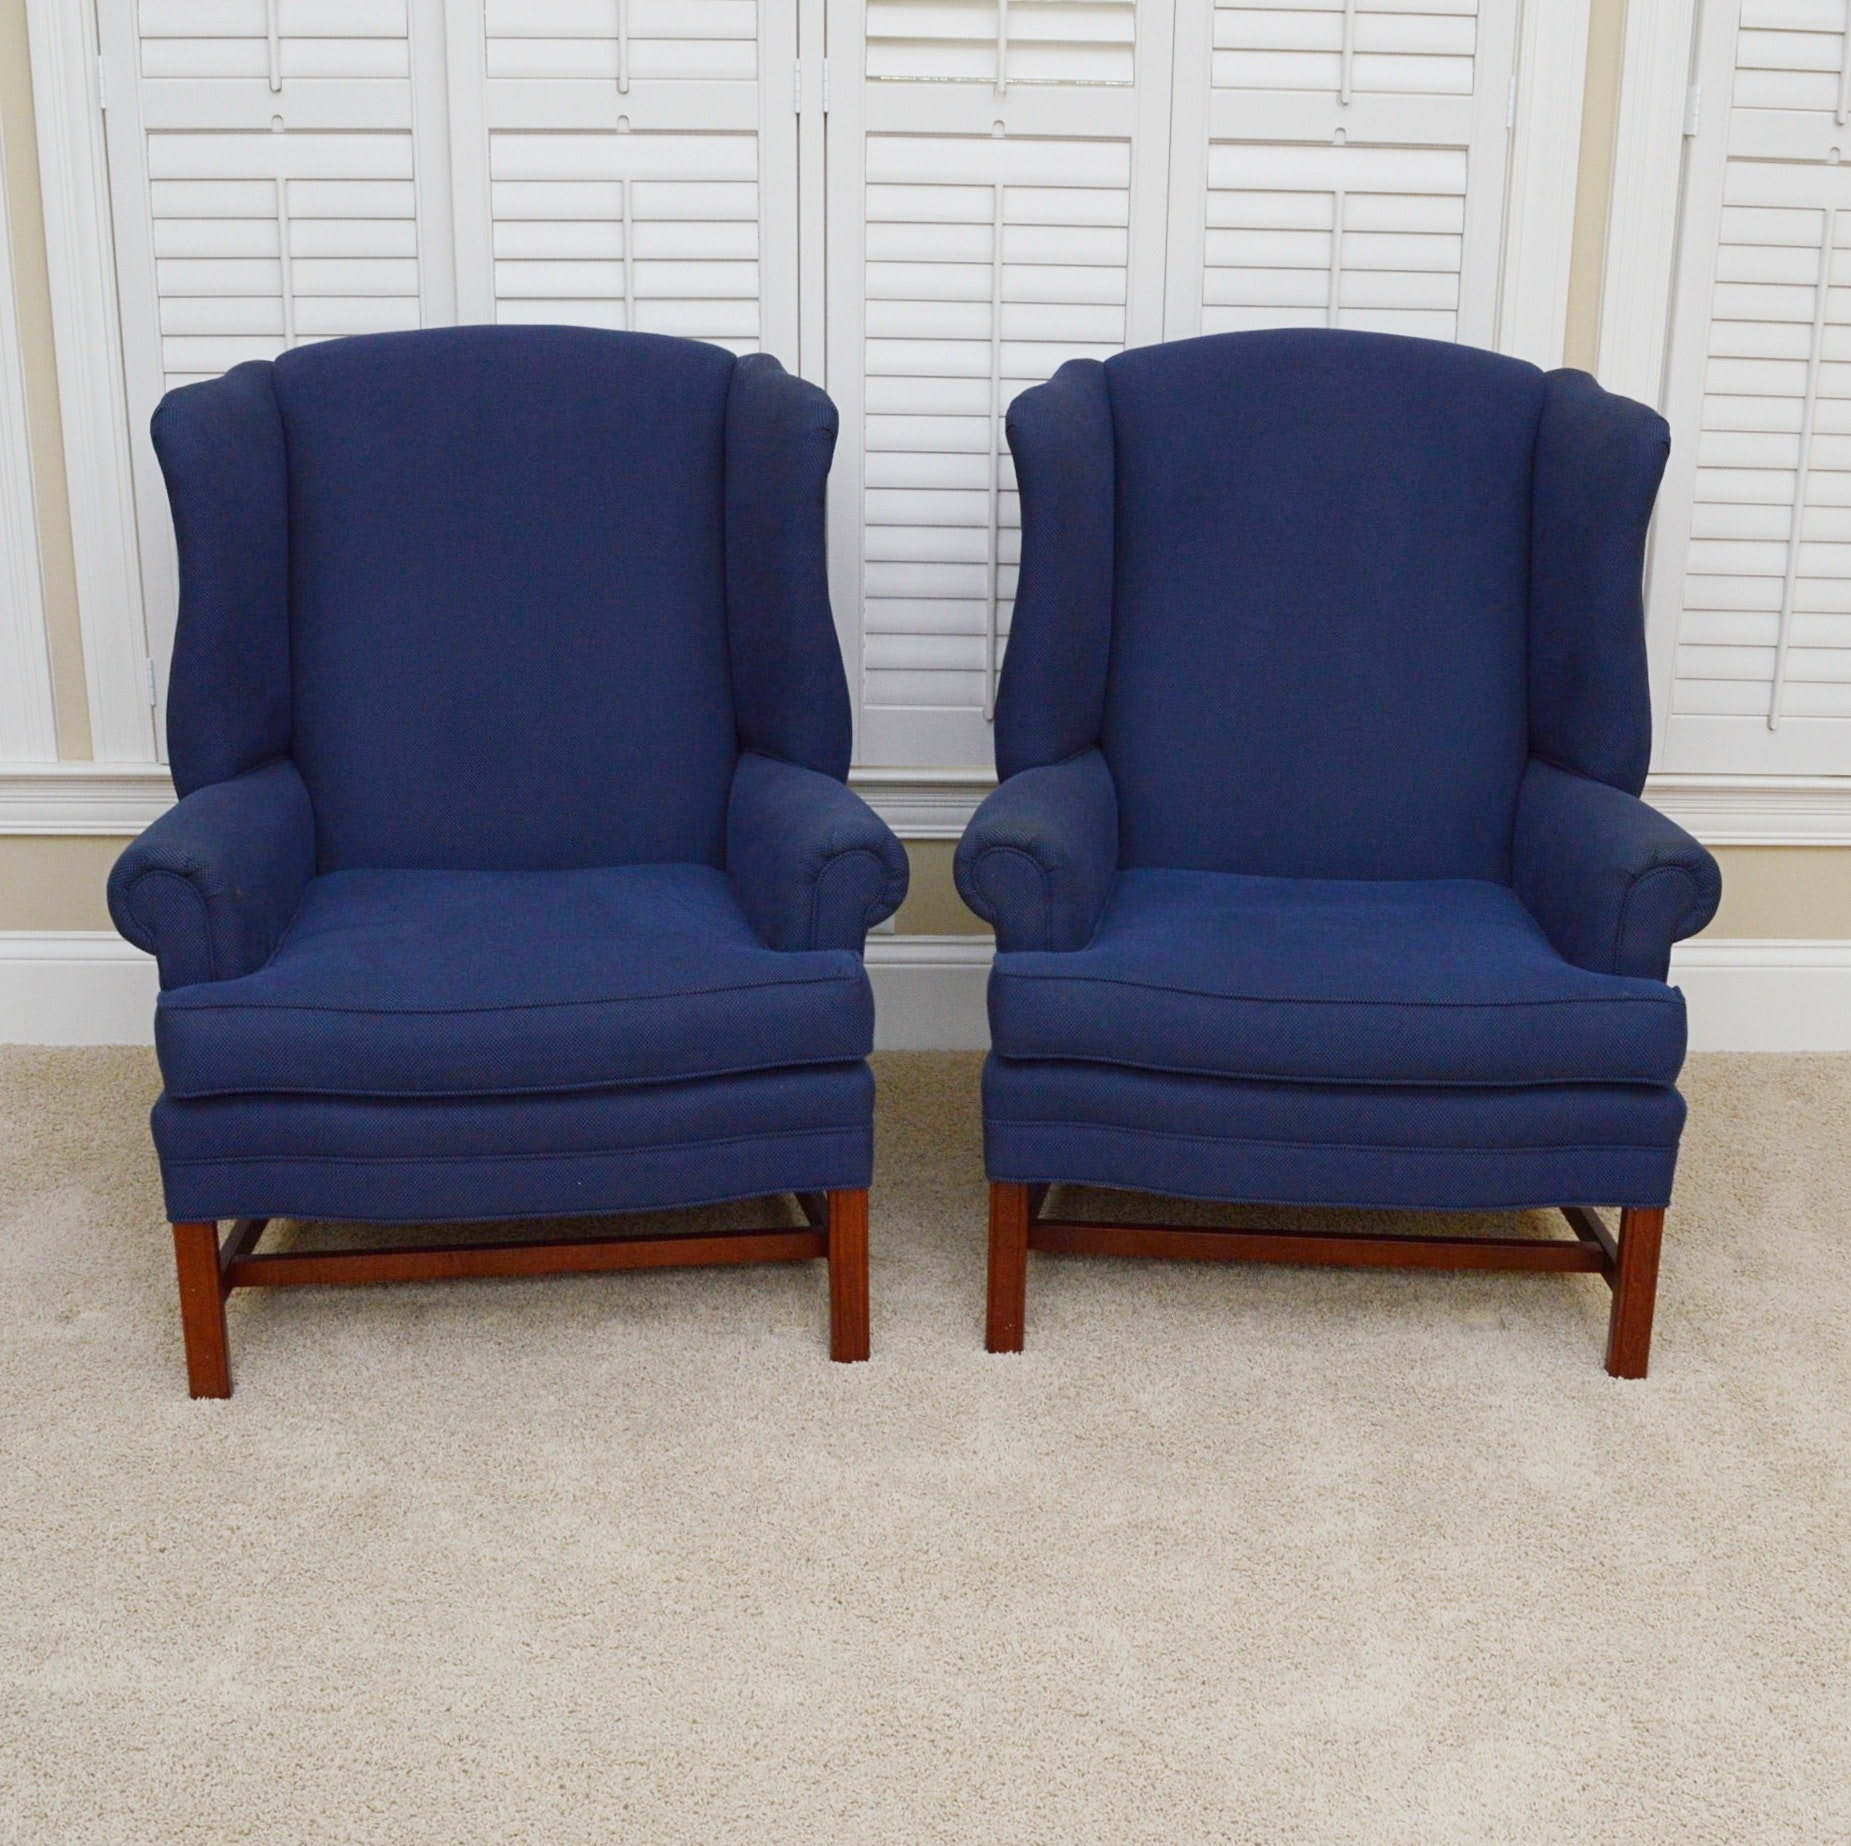 Merveilleux Pair Of Wing Back Chairs By Conover Chair Company ...